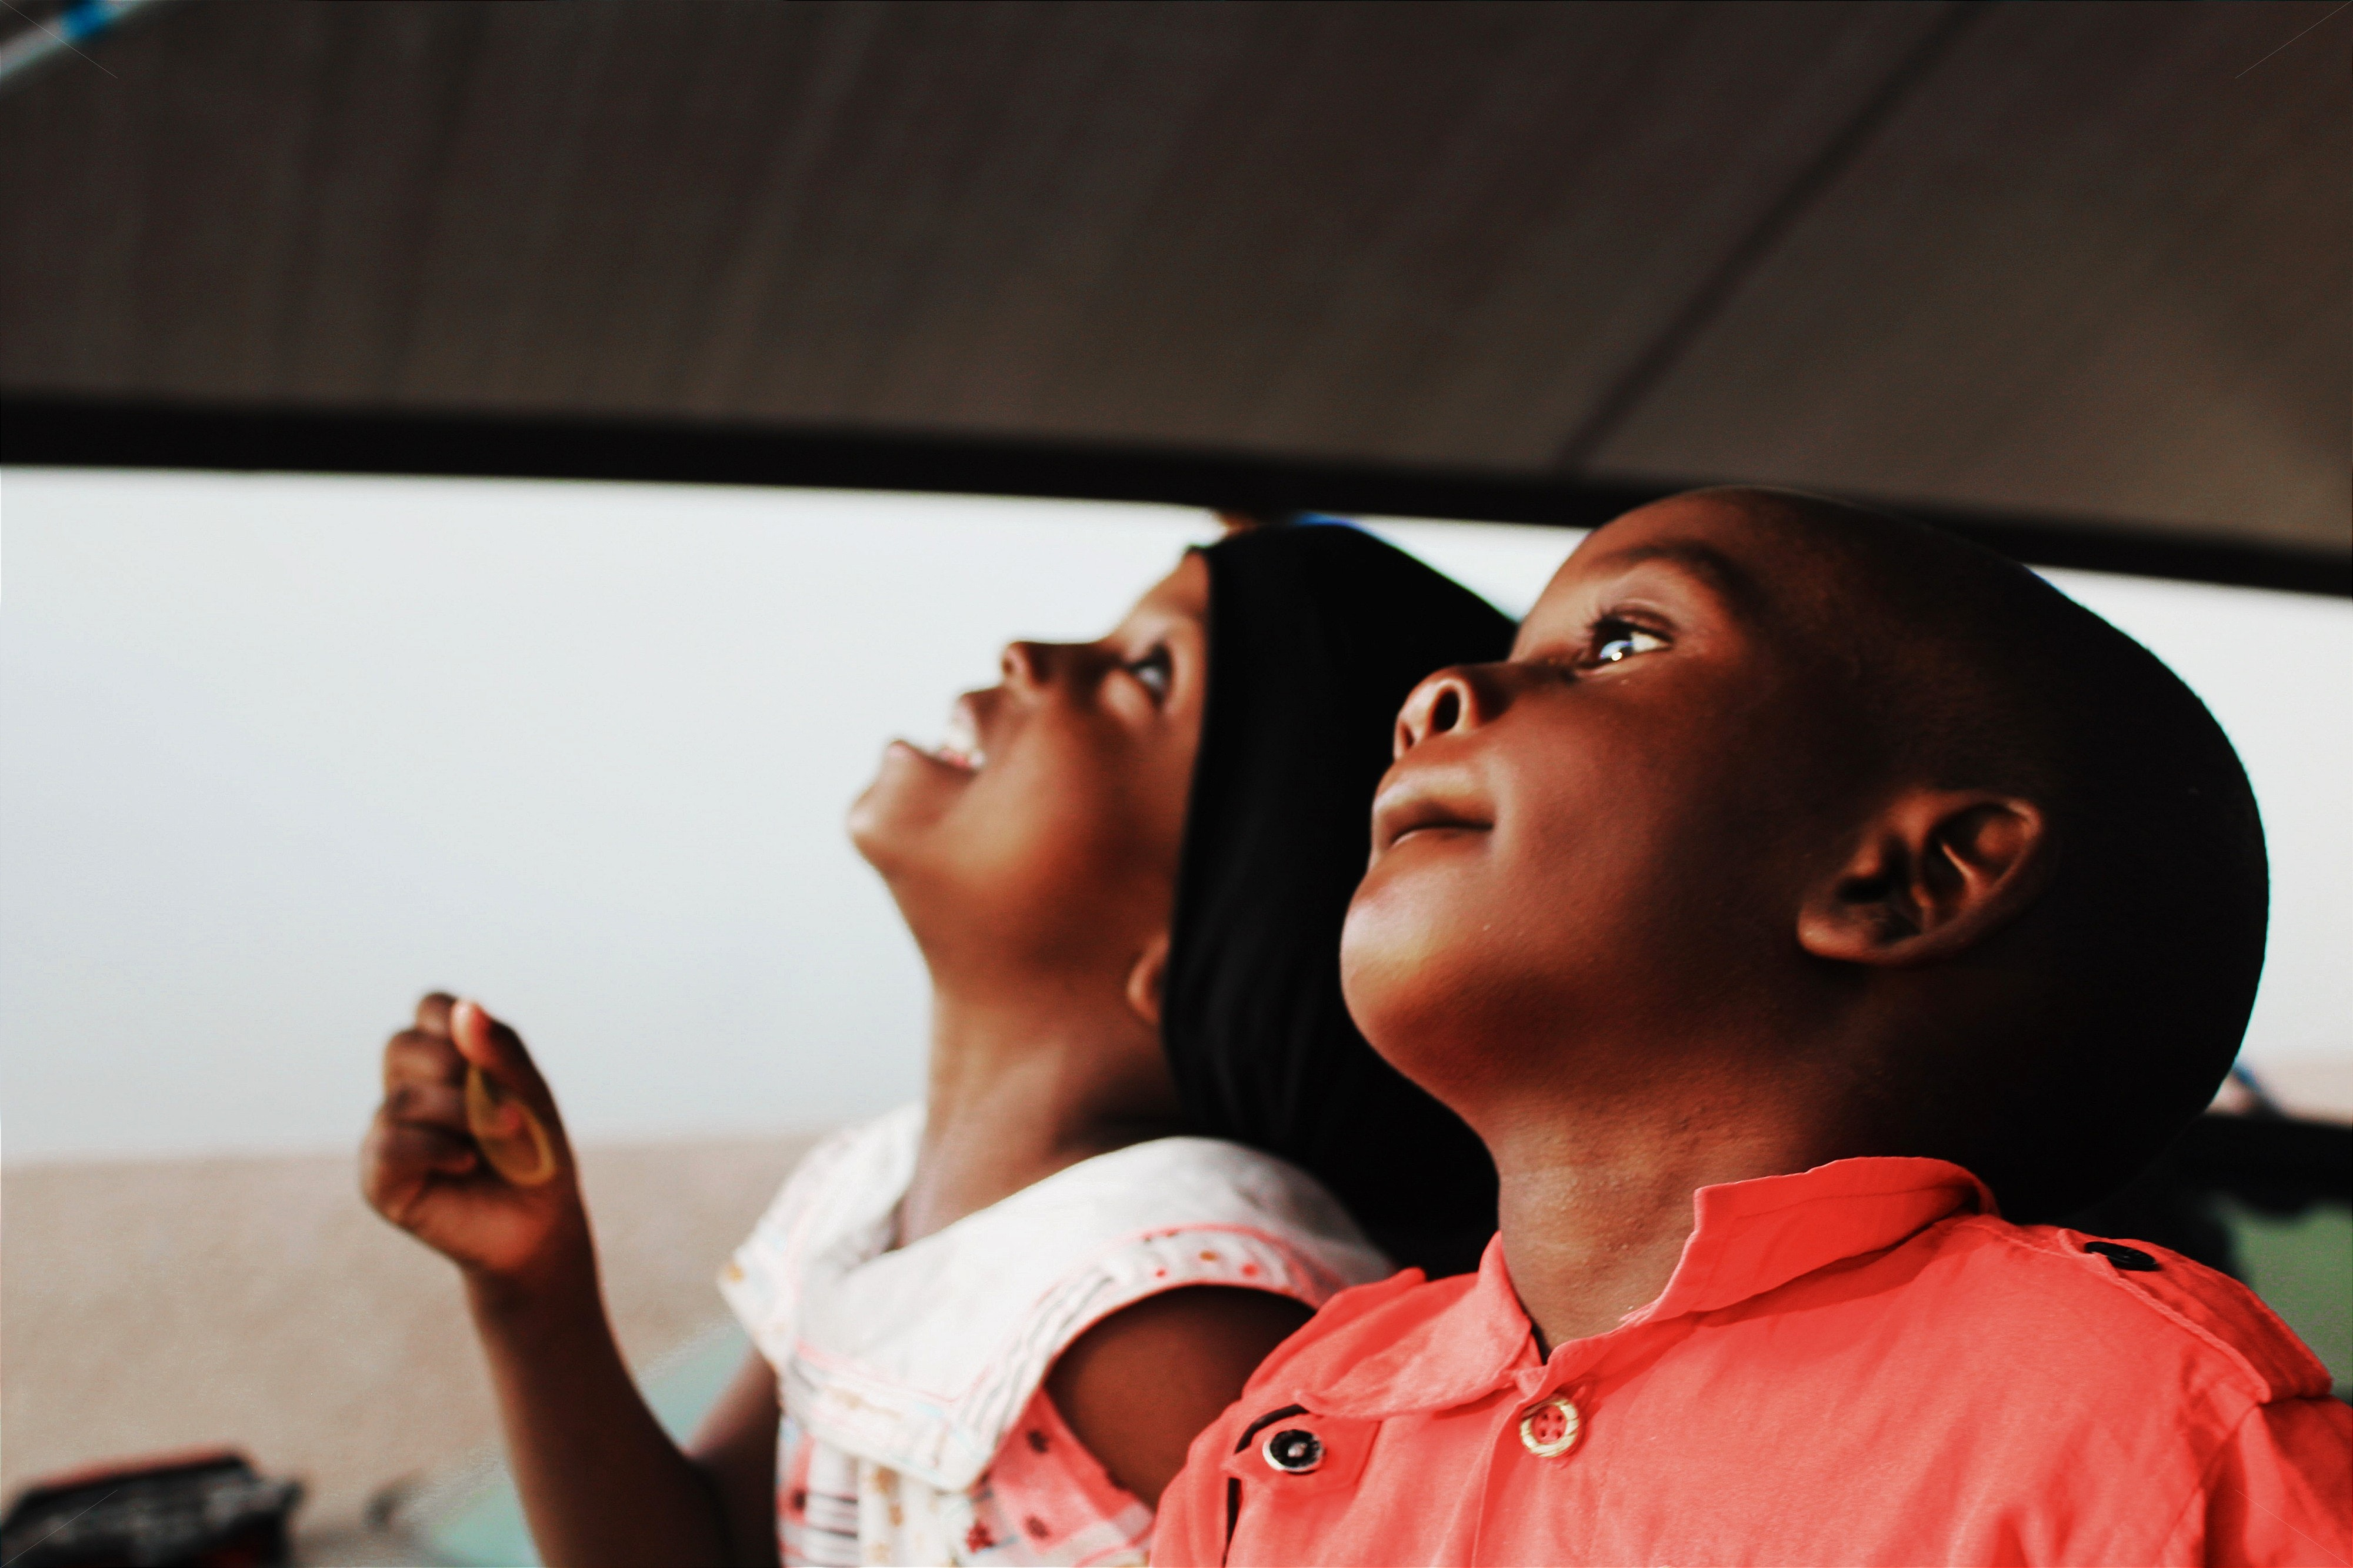 two-children-looking-up-2305192